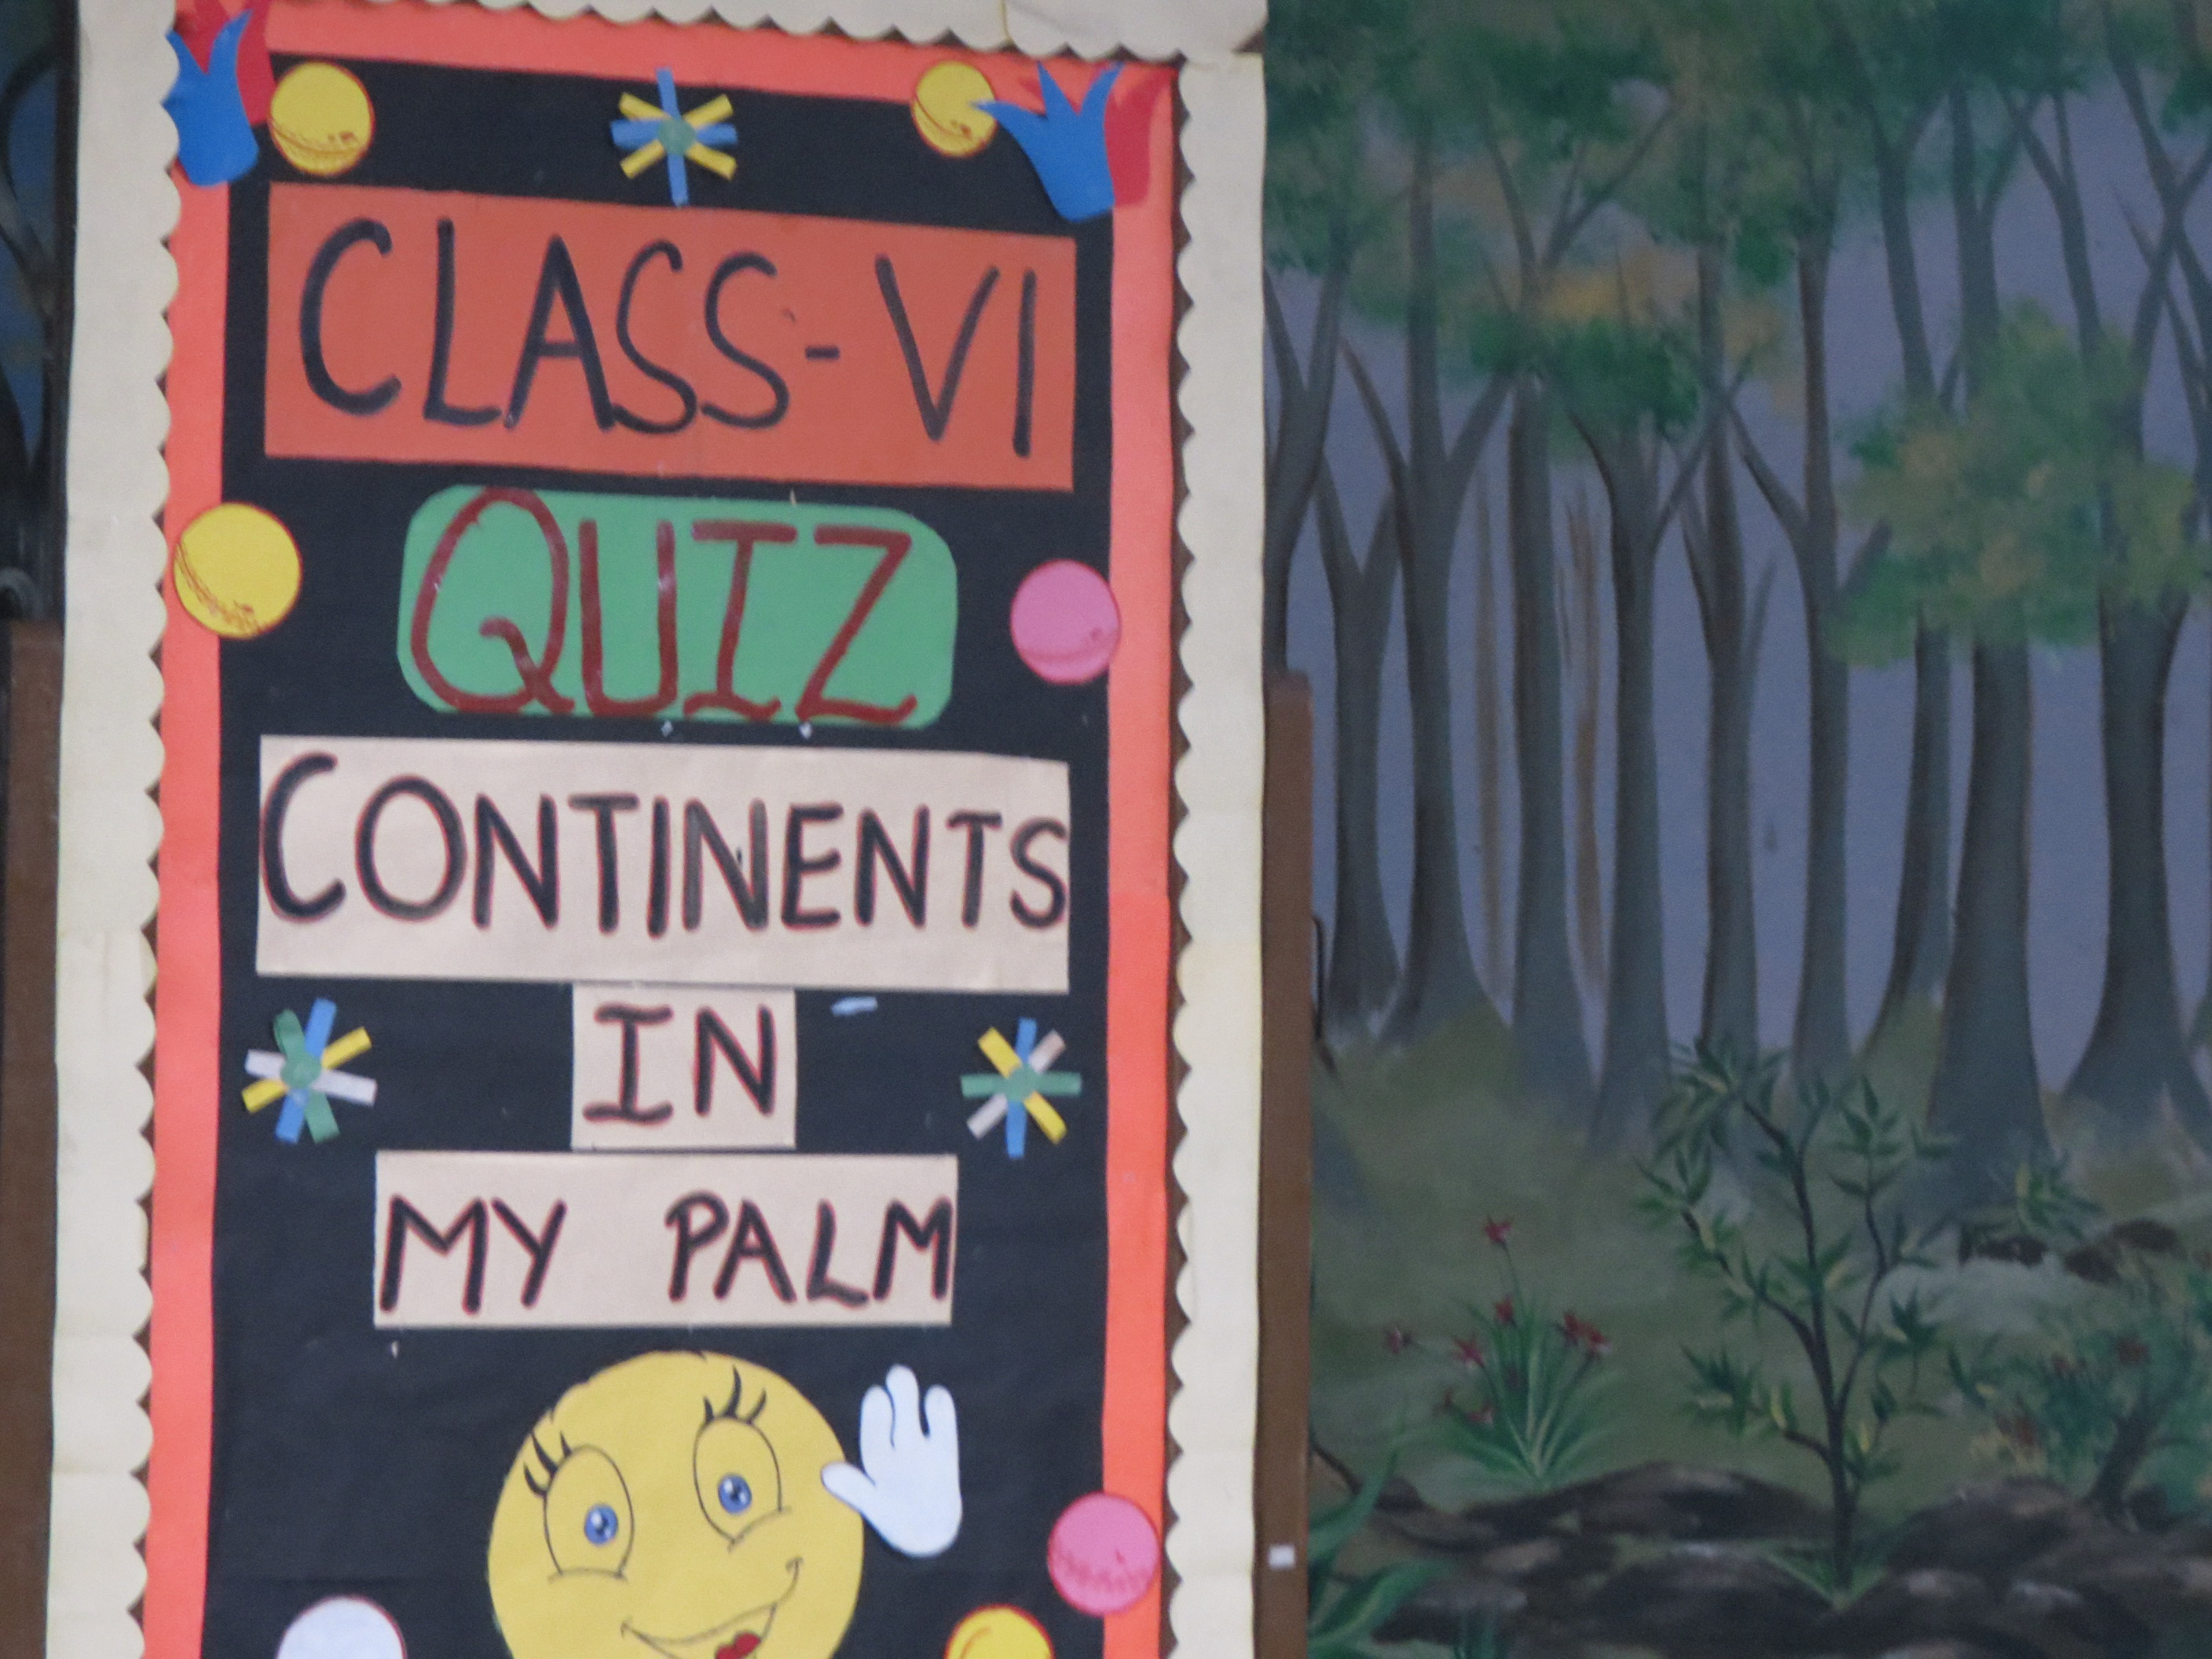 Quiz Competition- Class VI 'Continents in my palm'